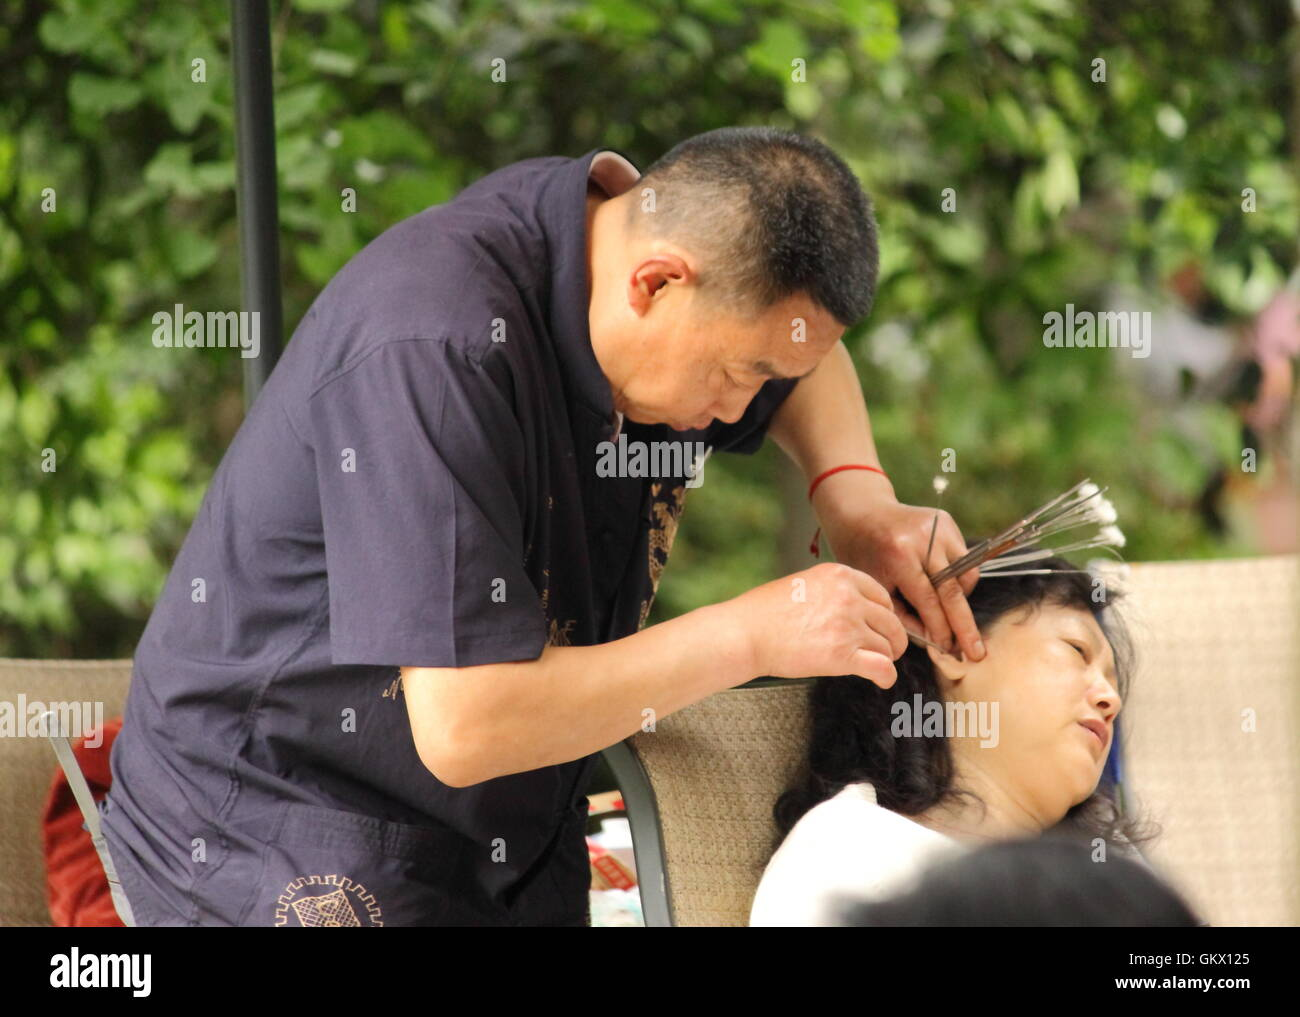 A man cleans ear wax using traditional tolls in People's park in Chengdu China. - Stock Image